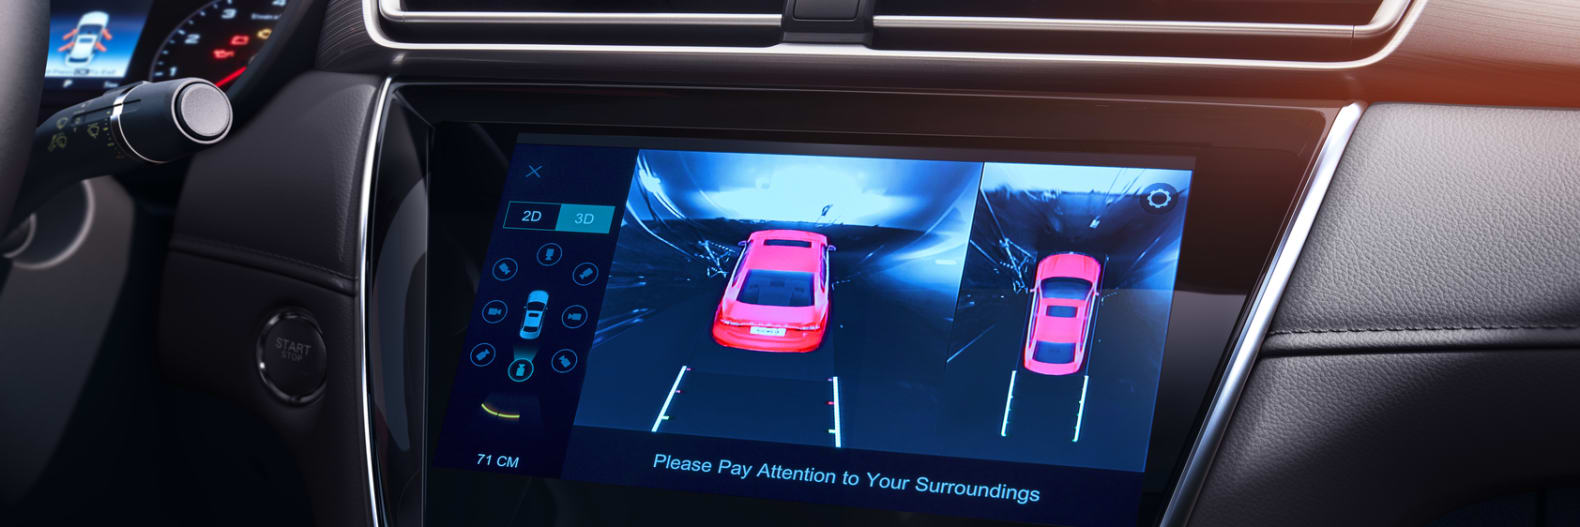 MG5 Black Interior Rear Camera with Guide line